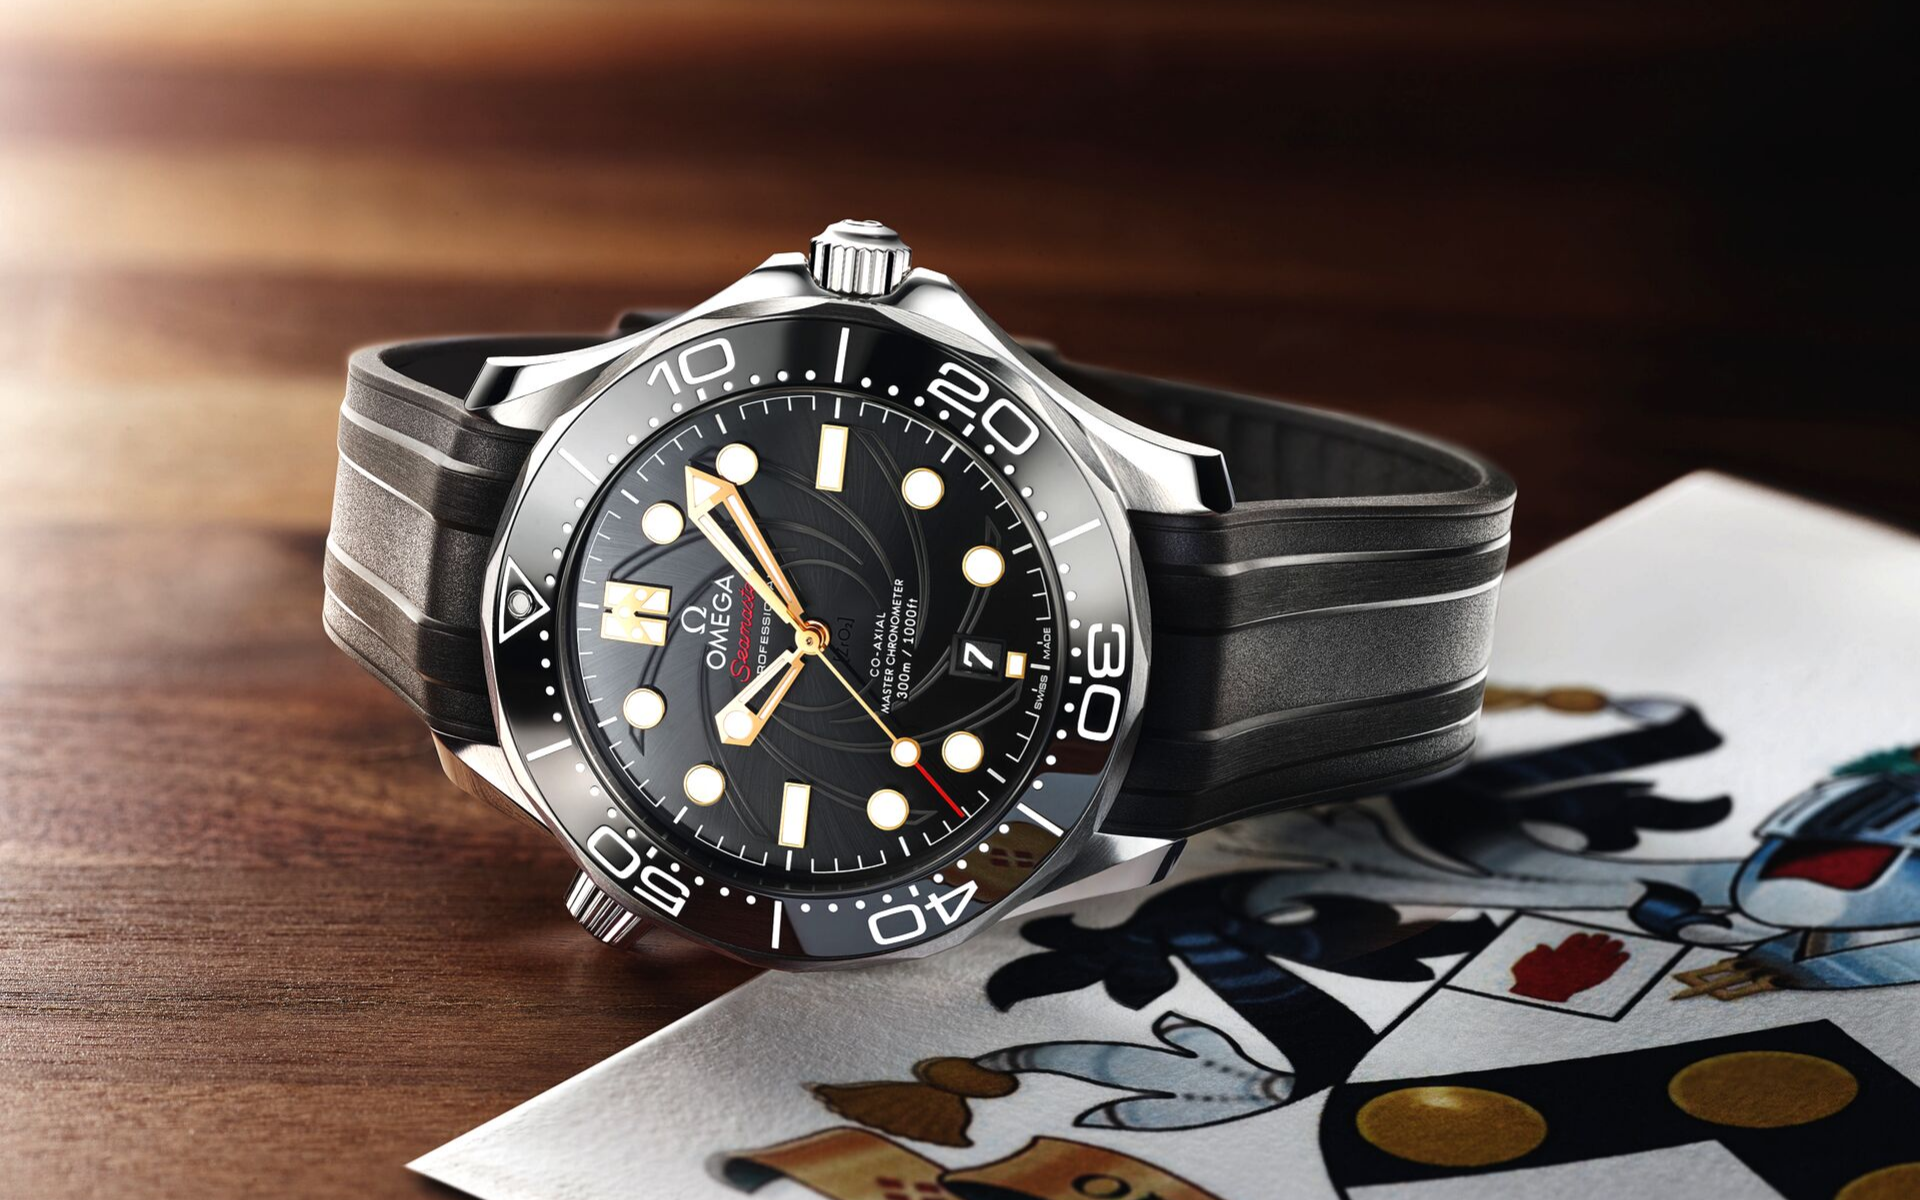 This Omega Seamaster Celebrates The James Bond Film, 'On Her Majesty's Secret Service'